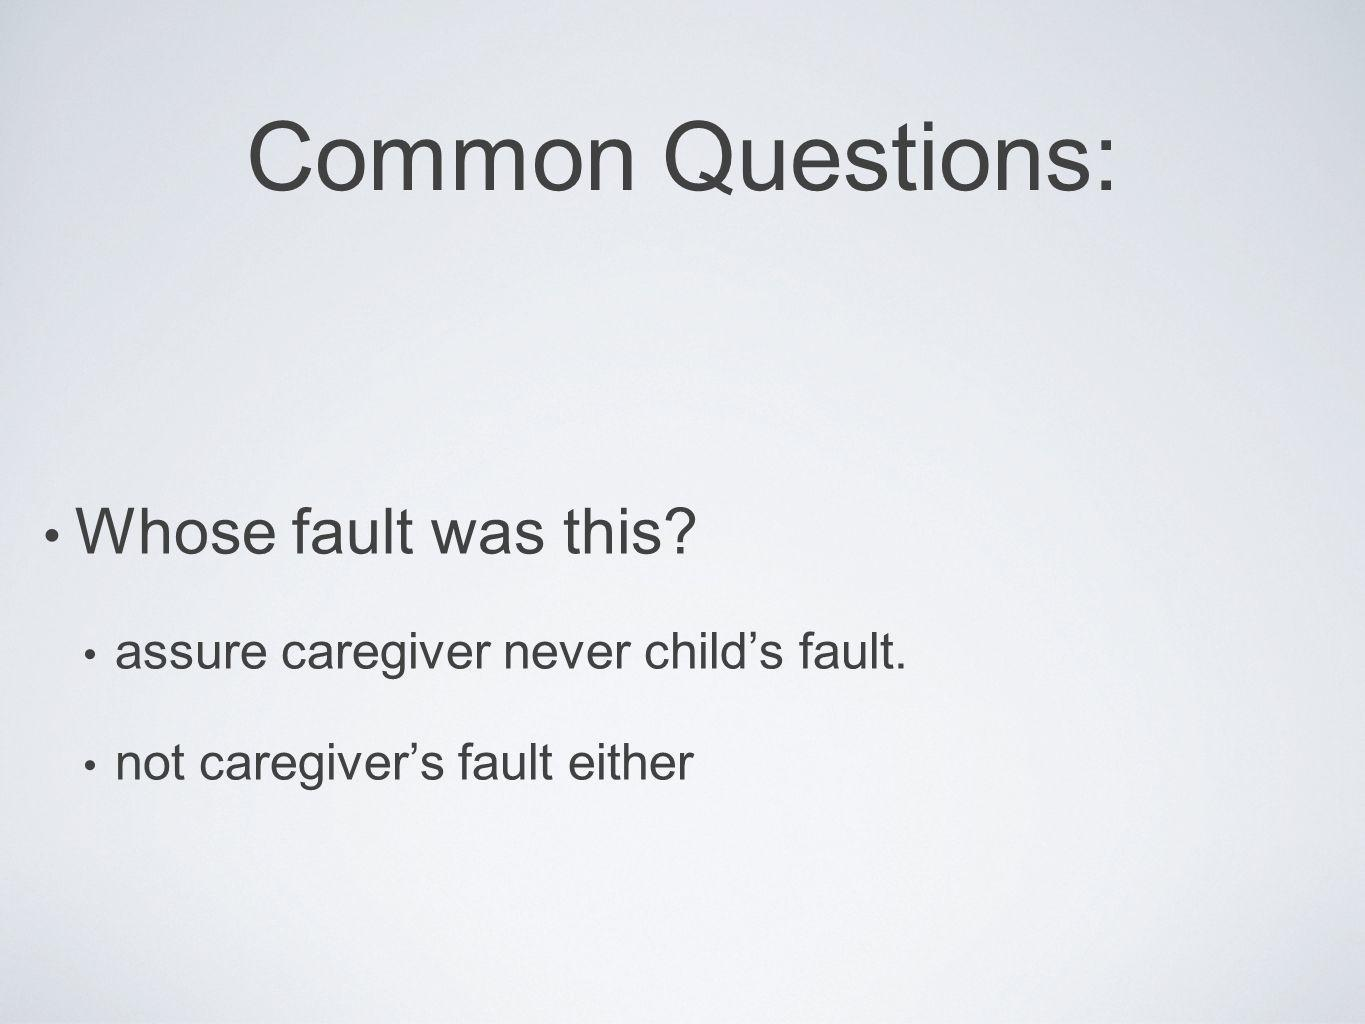 Common Questions: Whose fault was this? assure caregiver never childs fault. not caregivers fault either